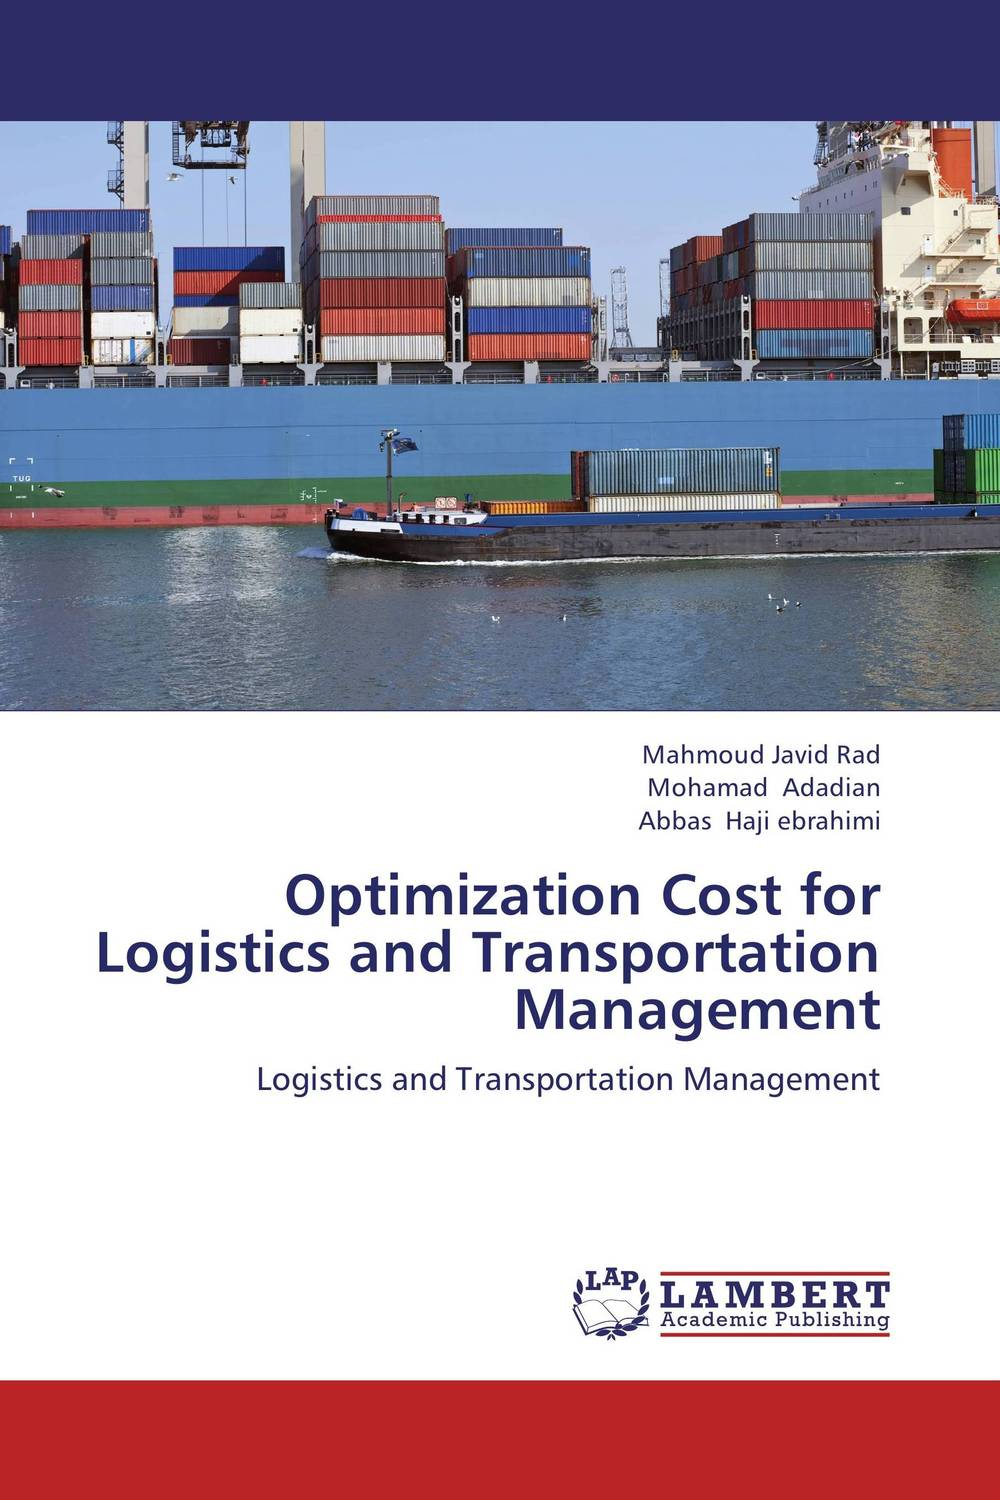 Optimization Cost for Logistics and Transportation Management